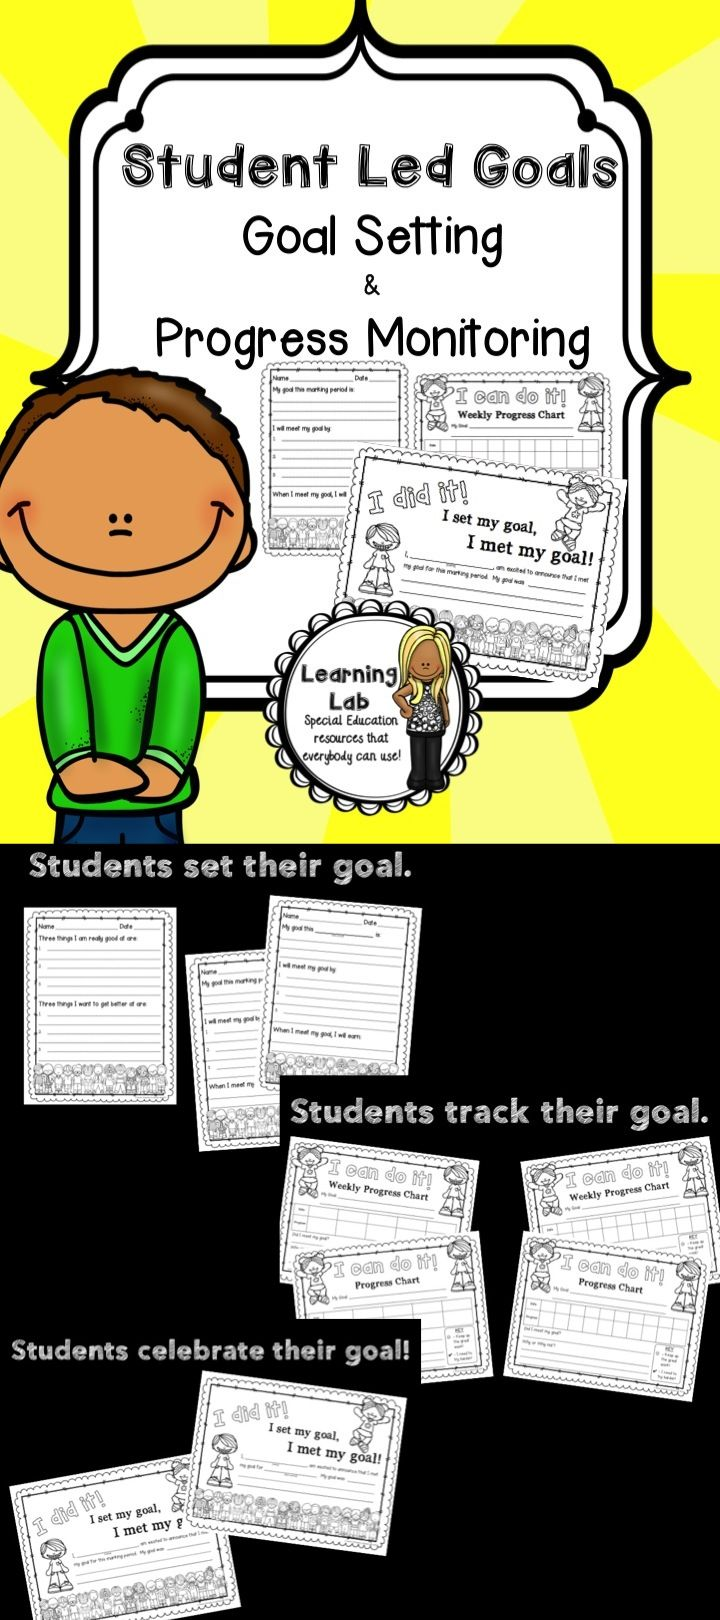 This student led goals set helps students to set, track, and celebrate their own goals!  Use the planner to set a goal, the charts to progress monitor, and the certificate to celebrate their accomplishment!